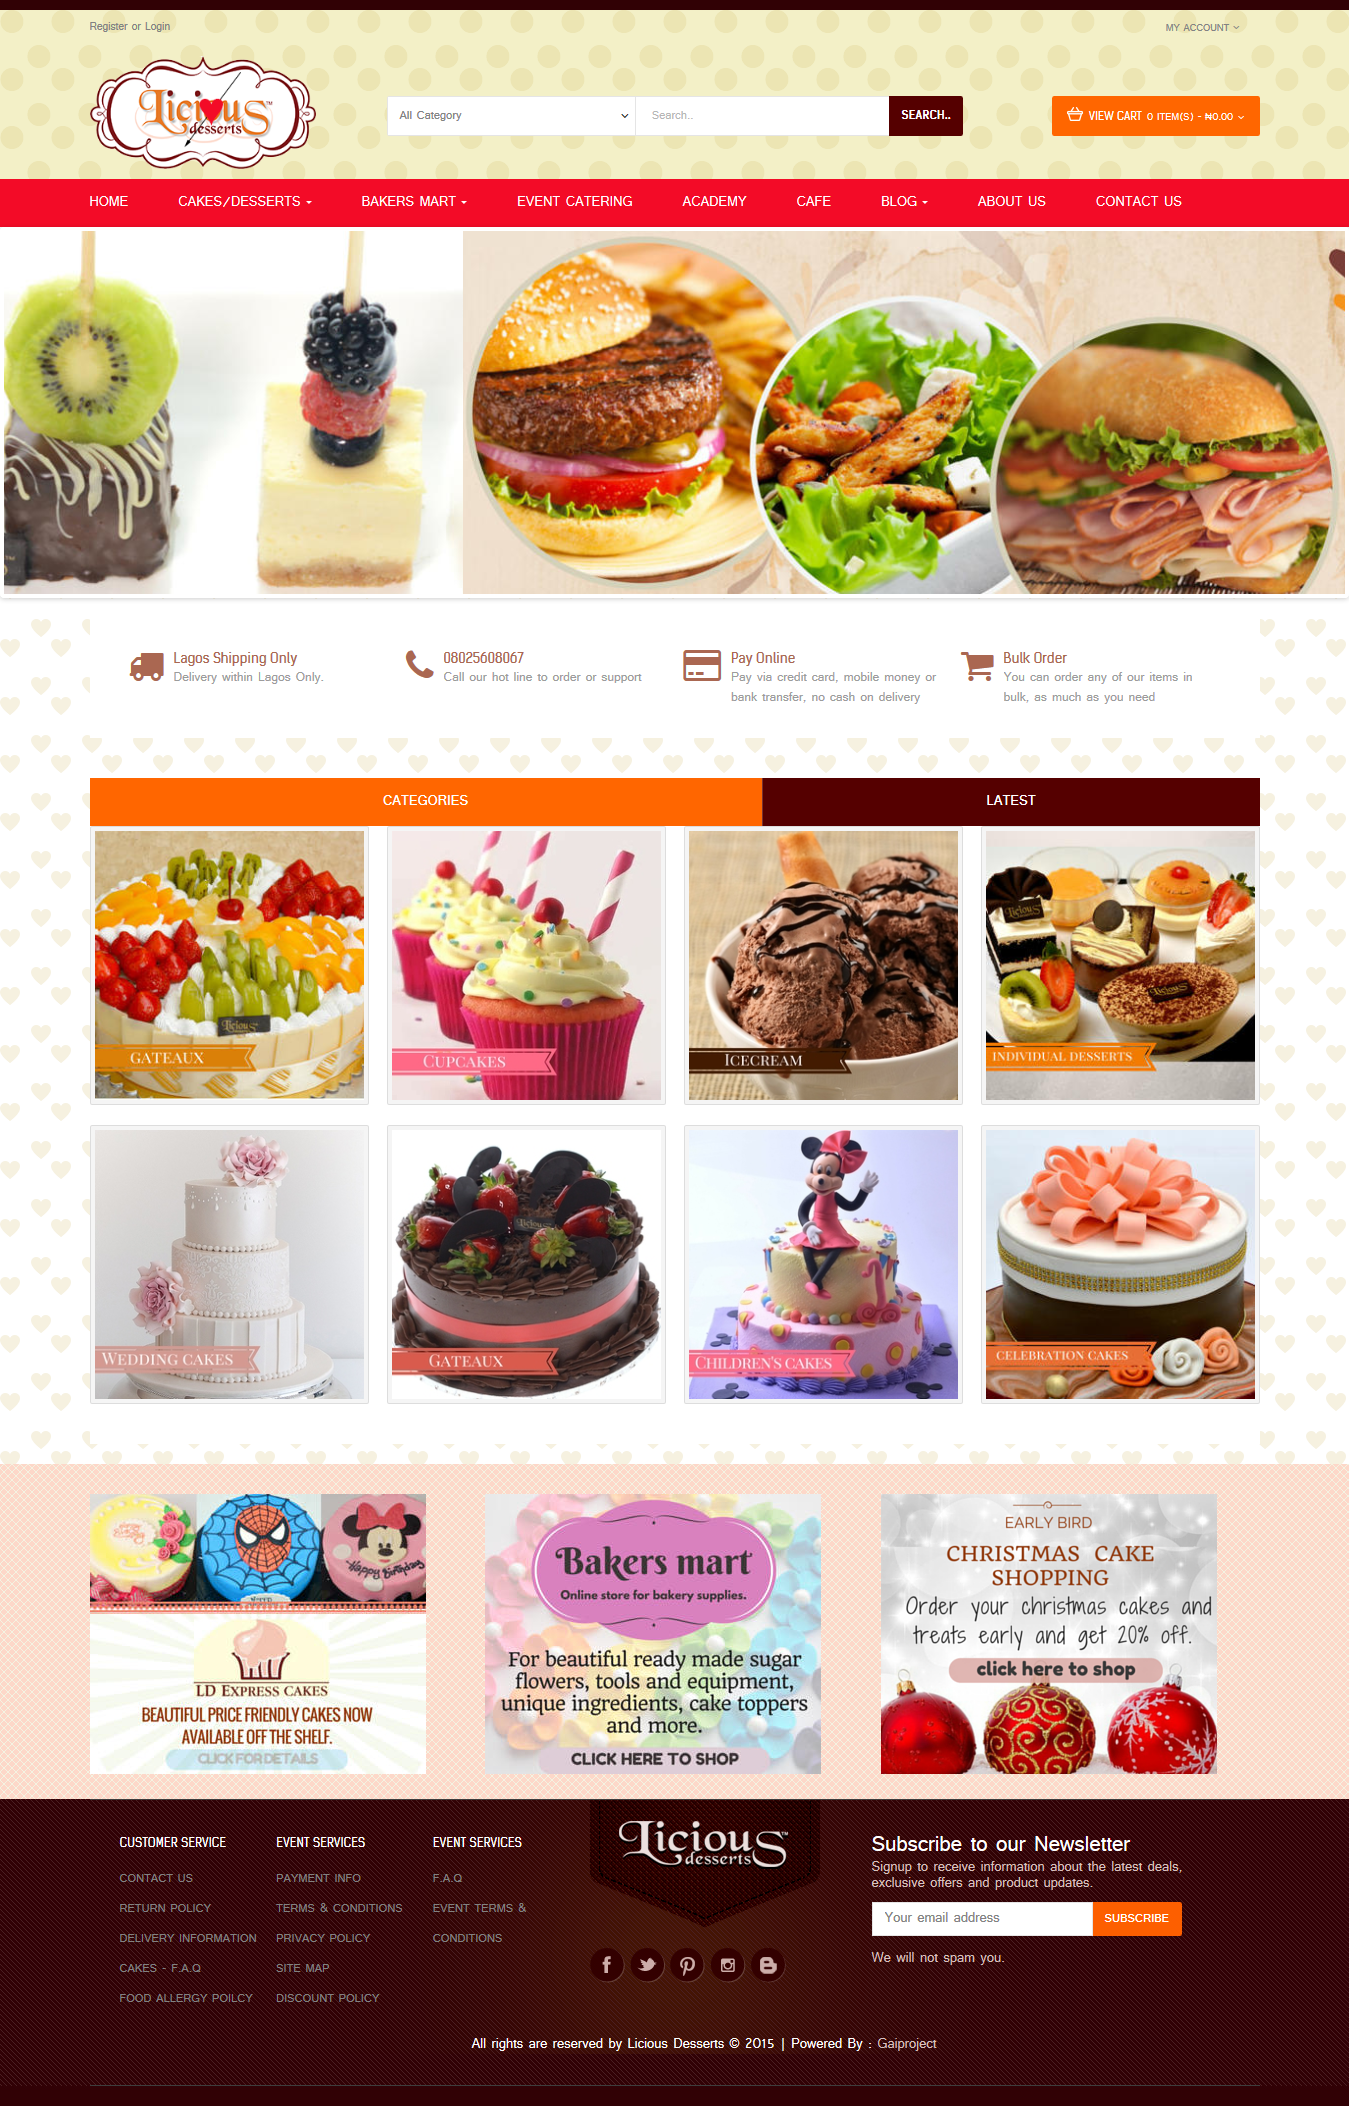 mockup for Licious Desserts. Yum!